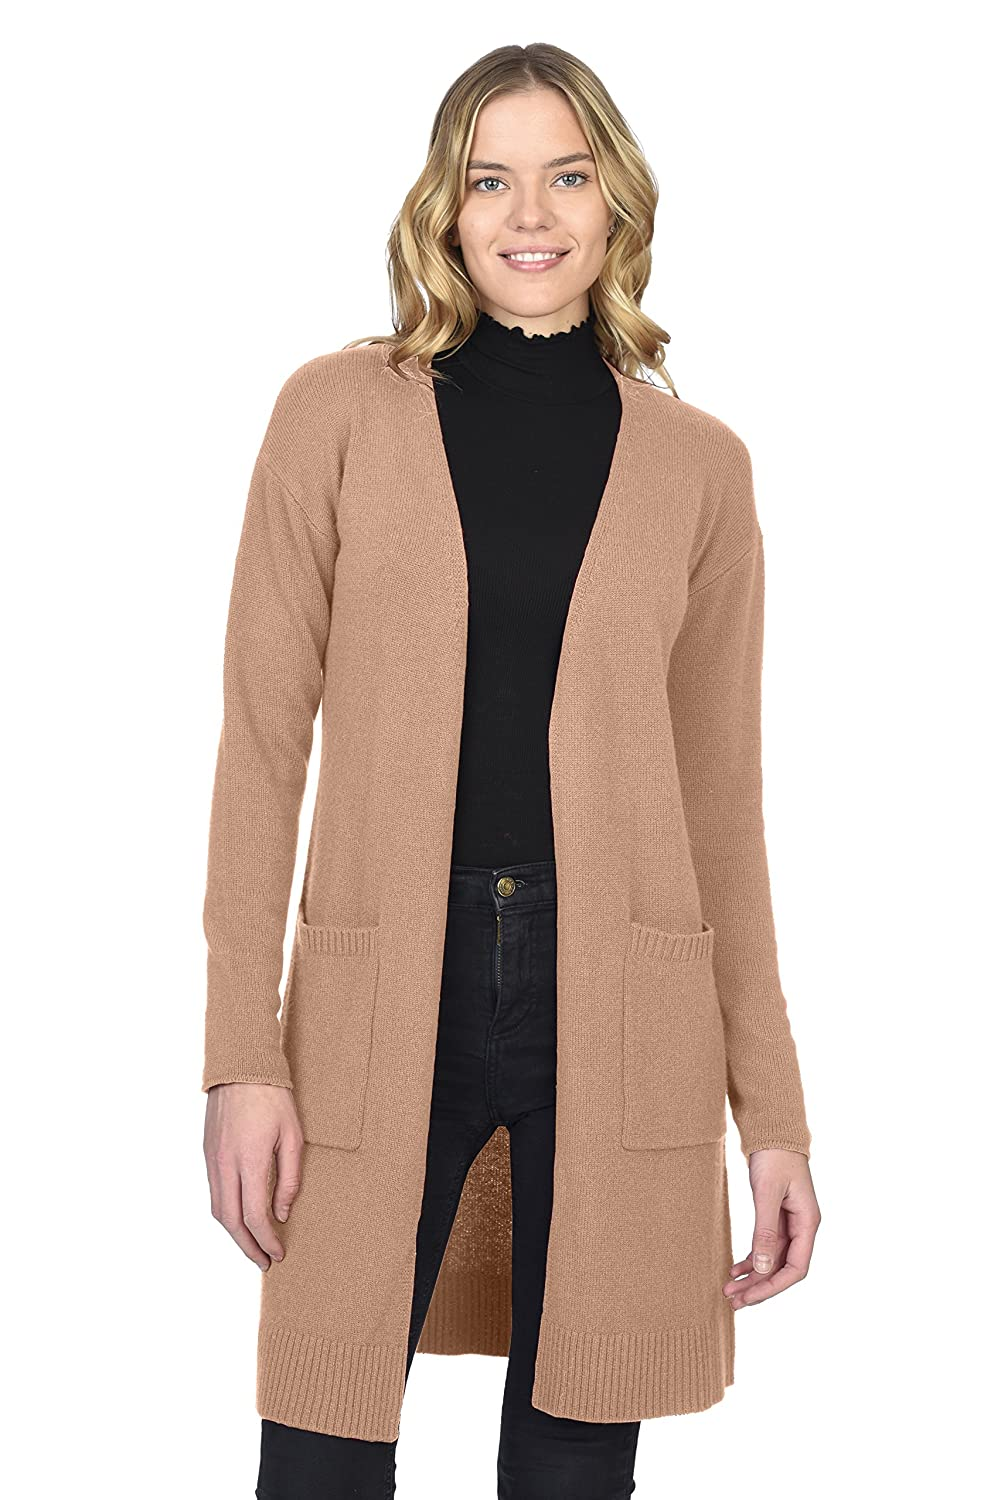 Cammello State Cashmere Women's 100% Pure Cashmere Open Front Long Cardigan